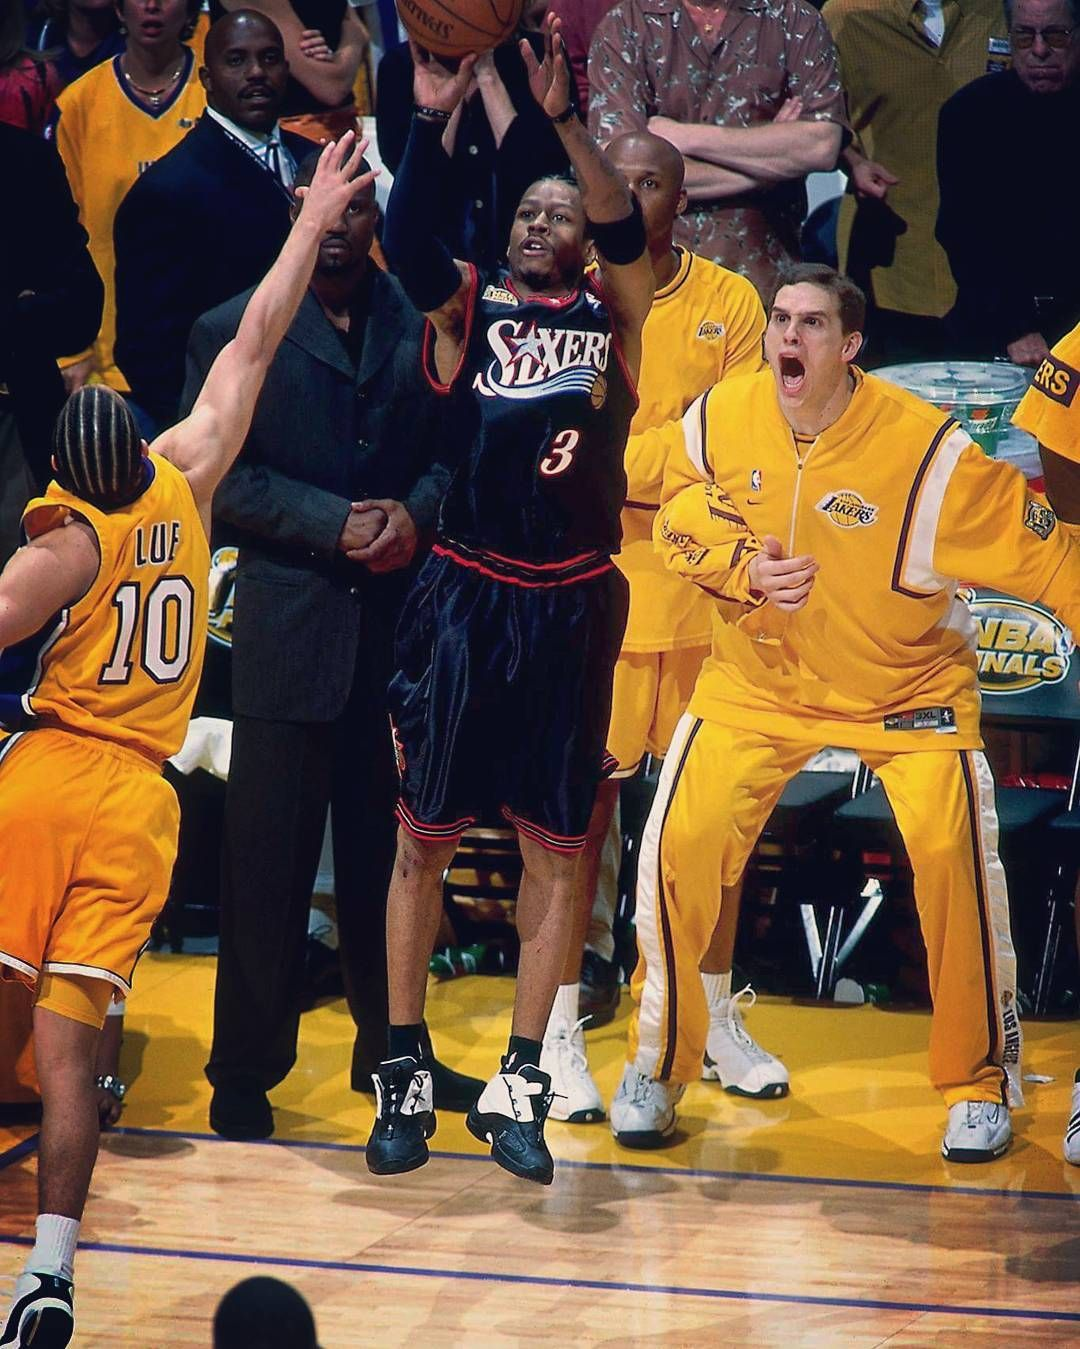 Allen Iverson Shots Over Tyronn Lue 2001 Nba Finals Game 1 Iverson Theanswer Philadelphia Sixers Proces Nba Legends Nba Pictures Basketball Photography